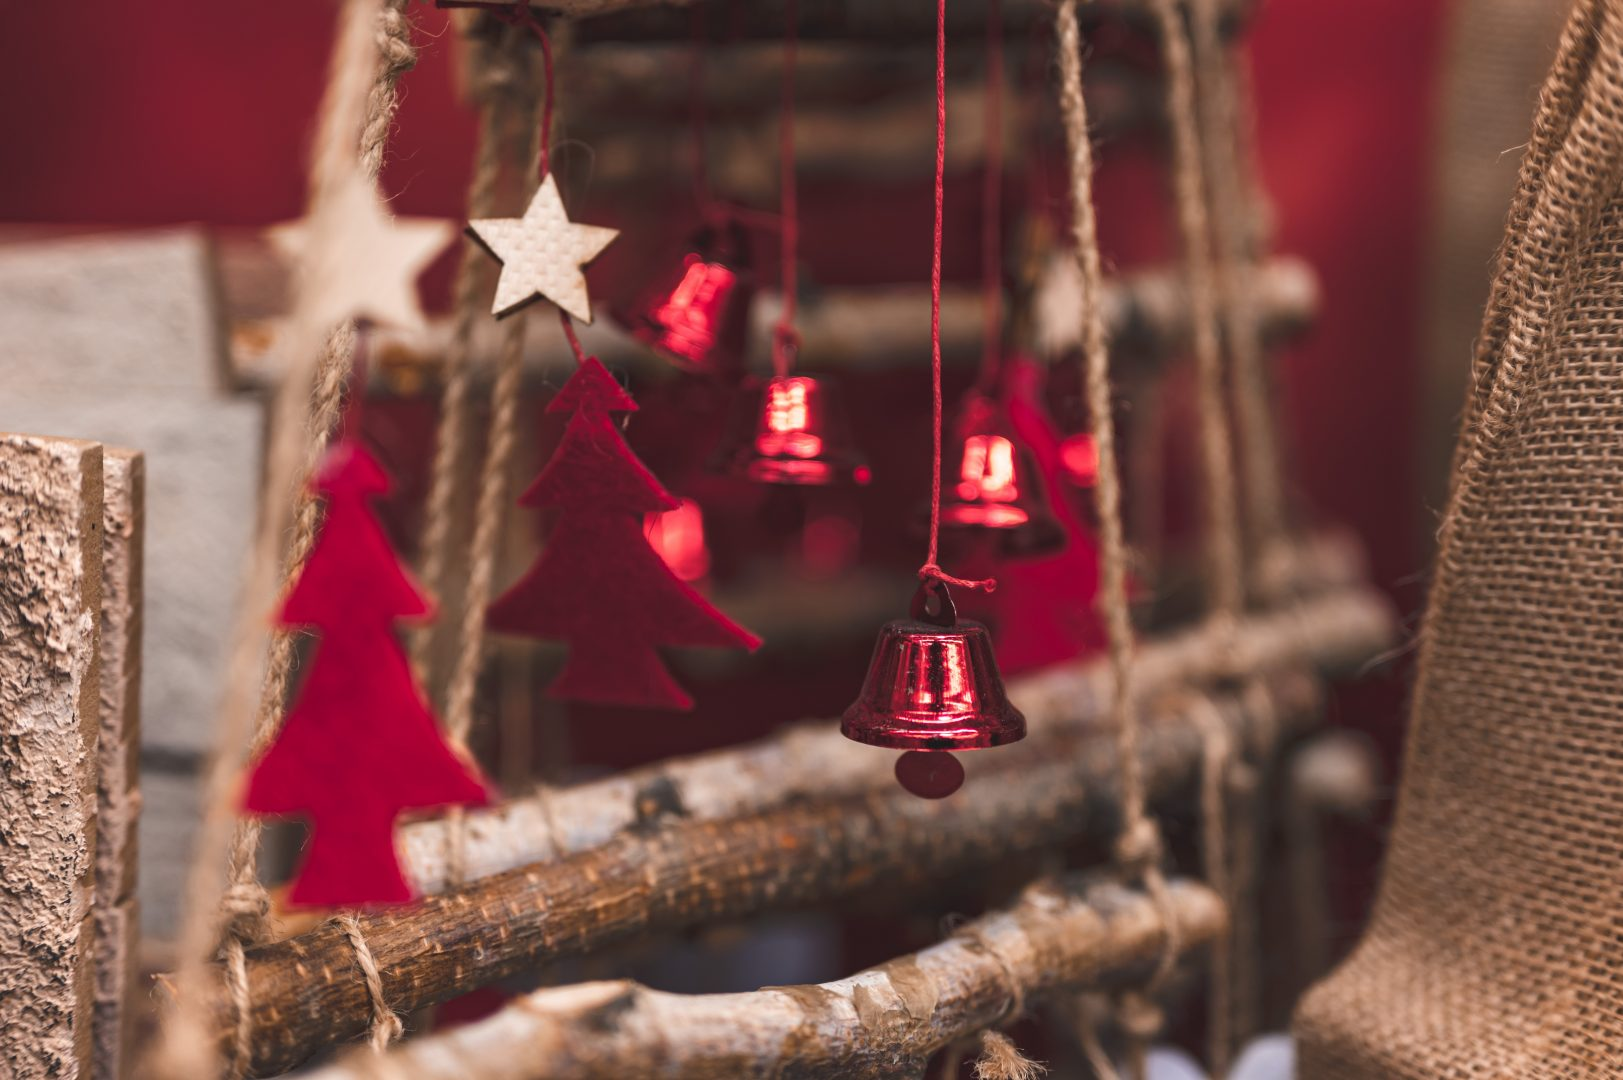 red and silver bell hanging on brown tree branch